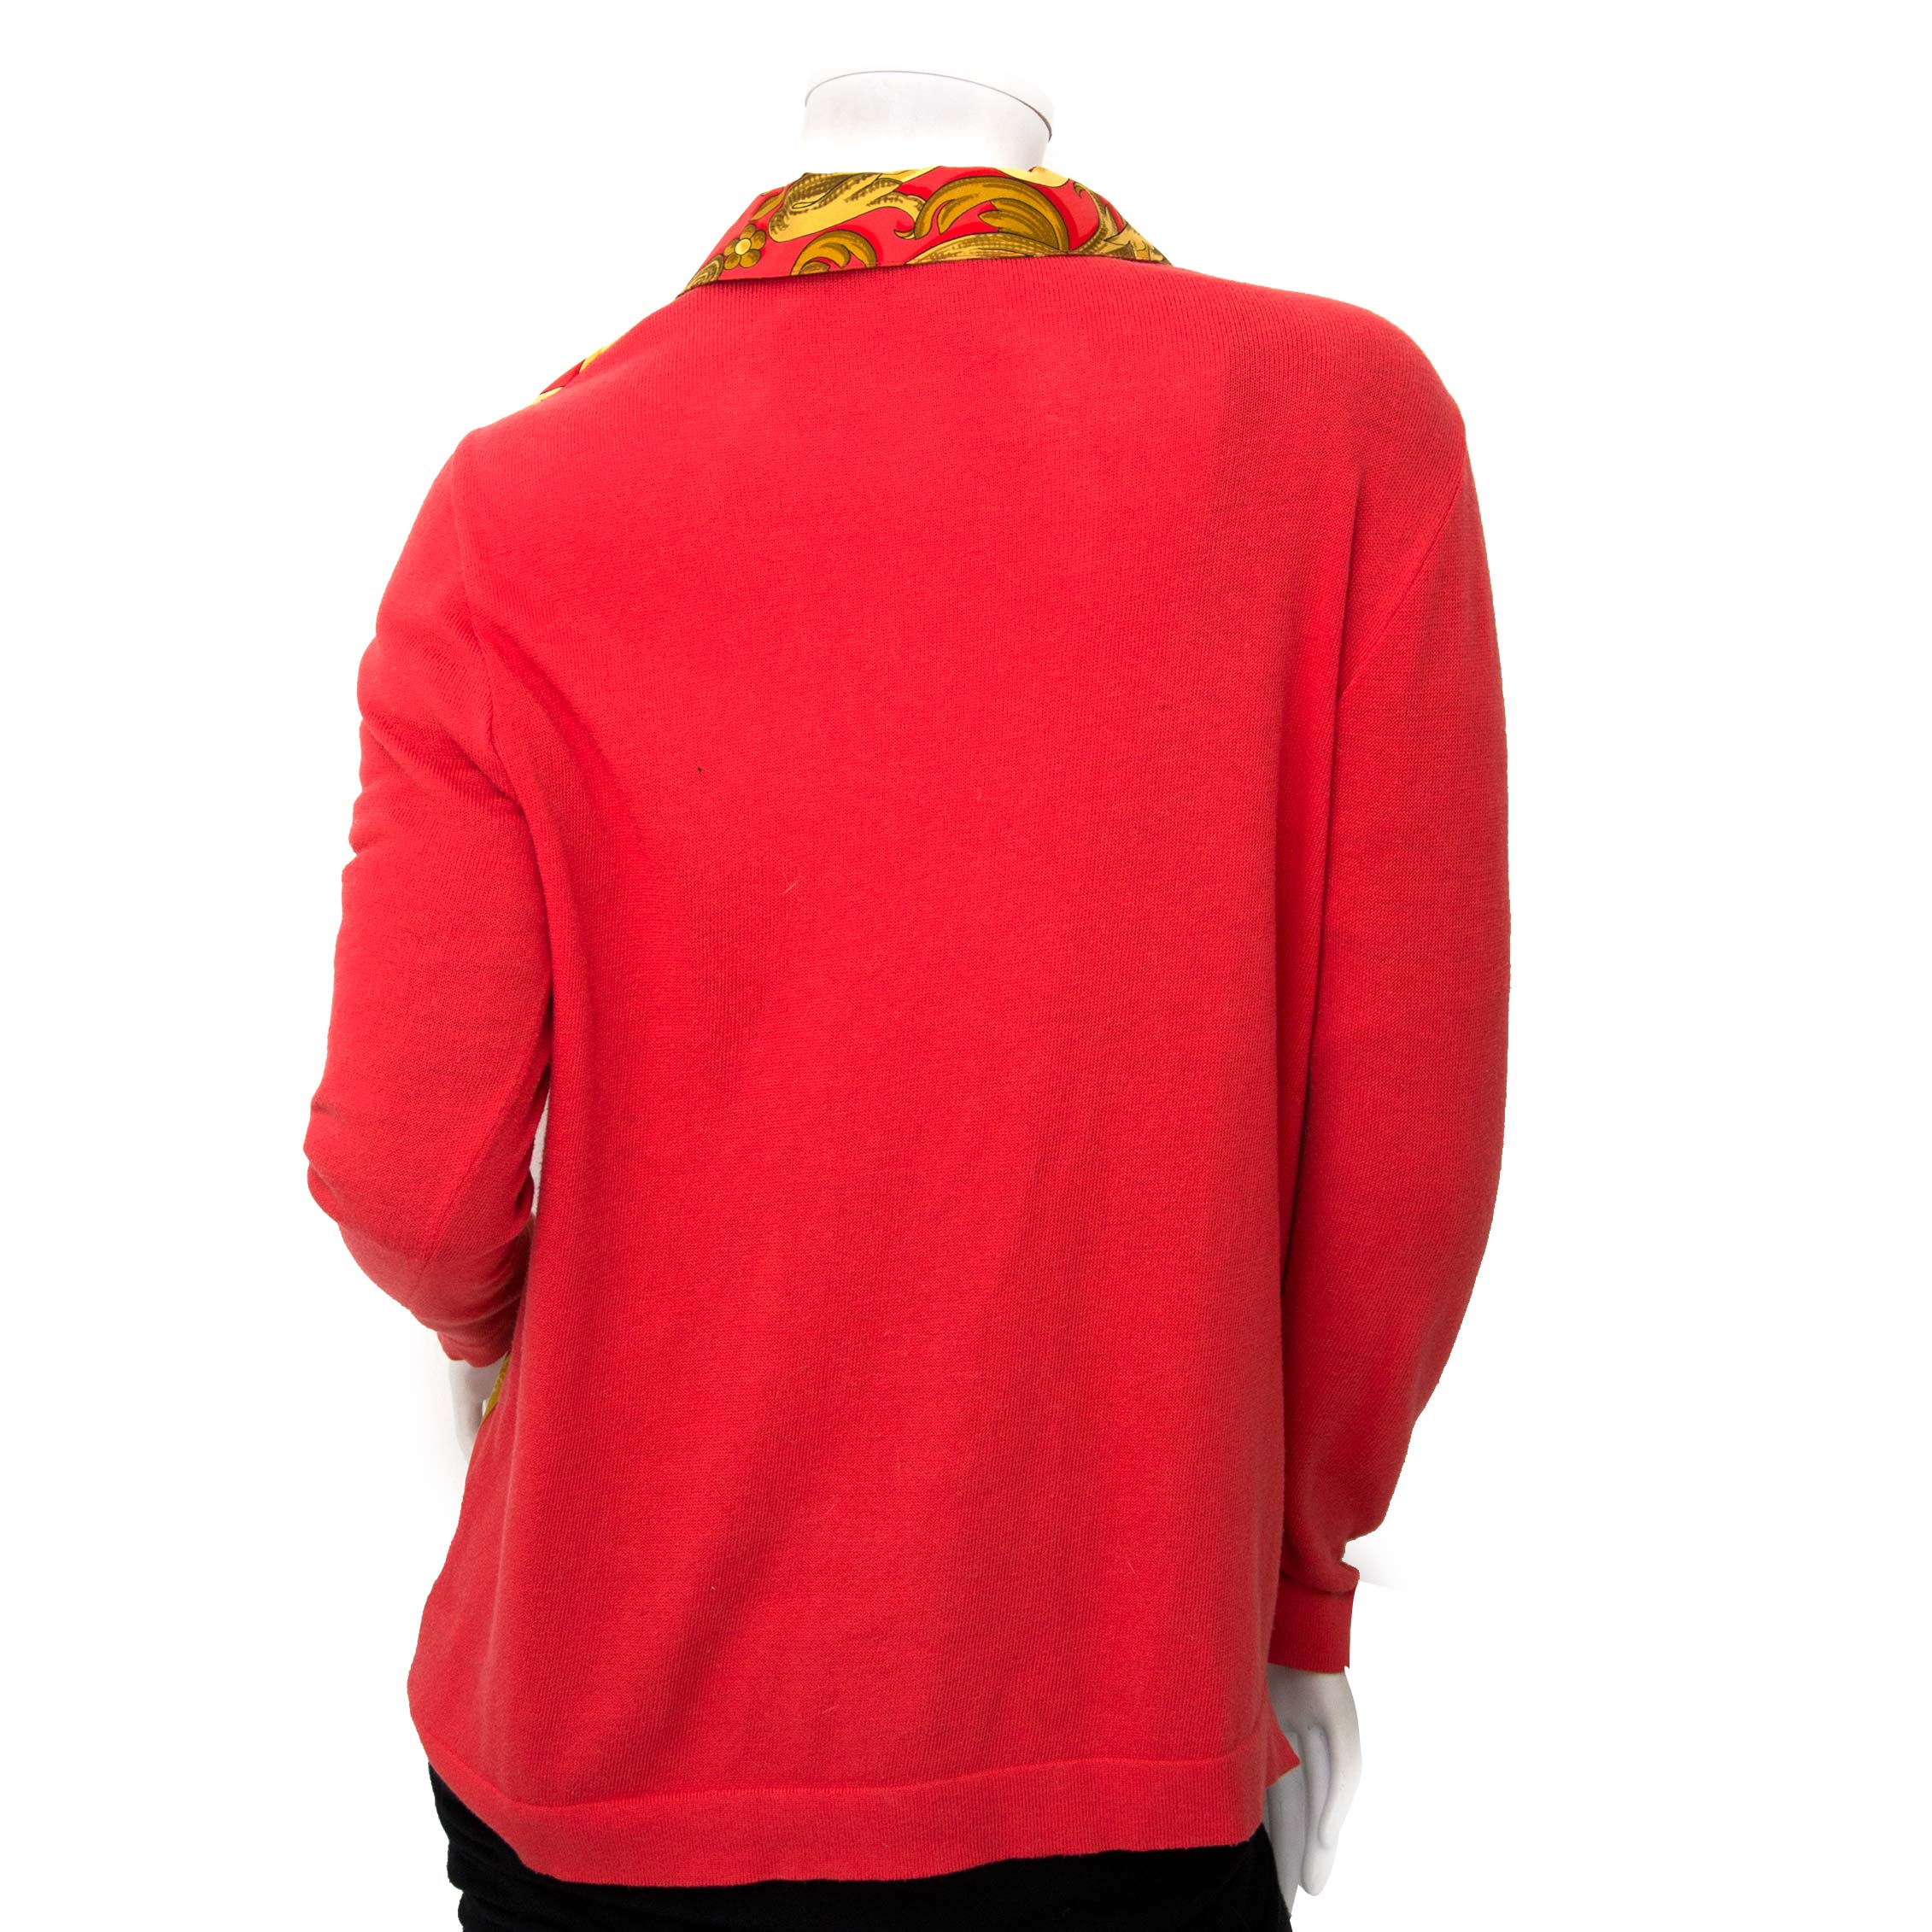 Achetez secur en ligne Hermès Red Printed Silk and Cashmere Top